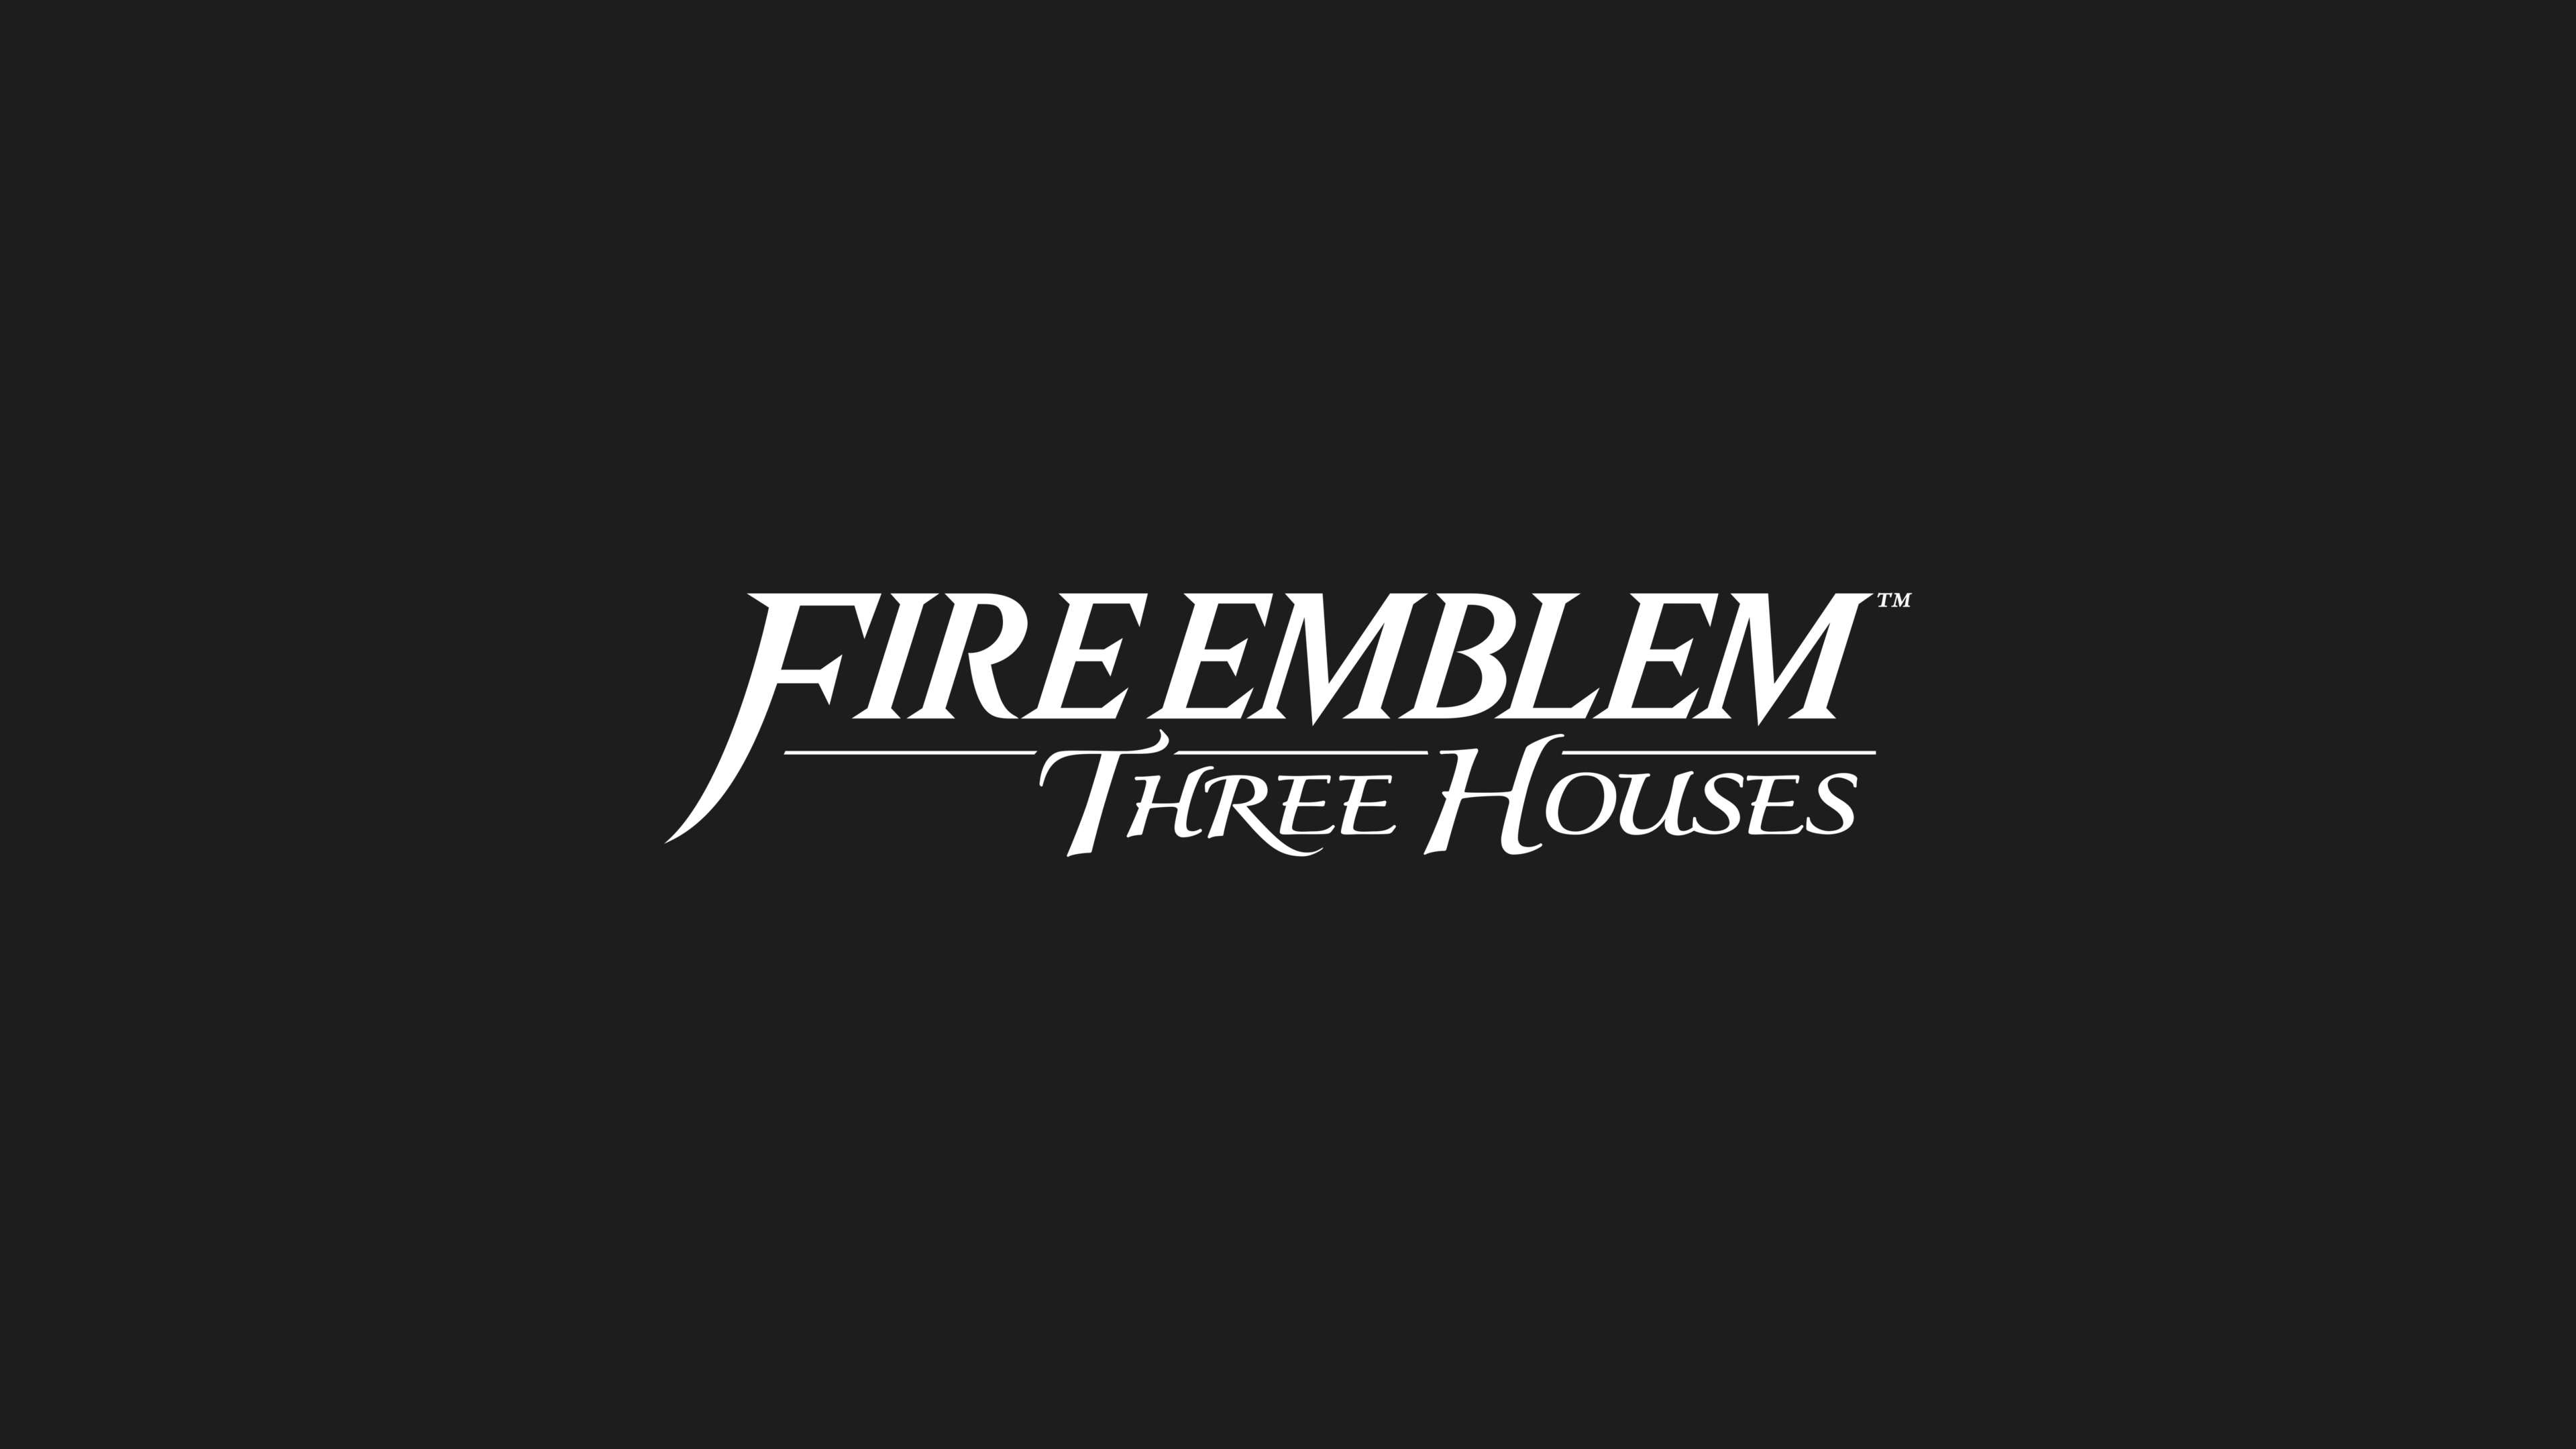 Fondos de pantalla Logo Fire Emblem: Three Houses